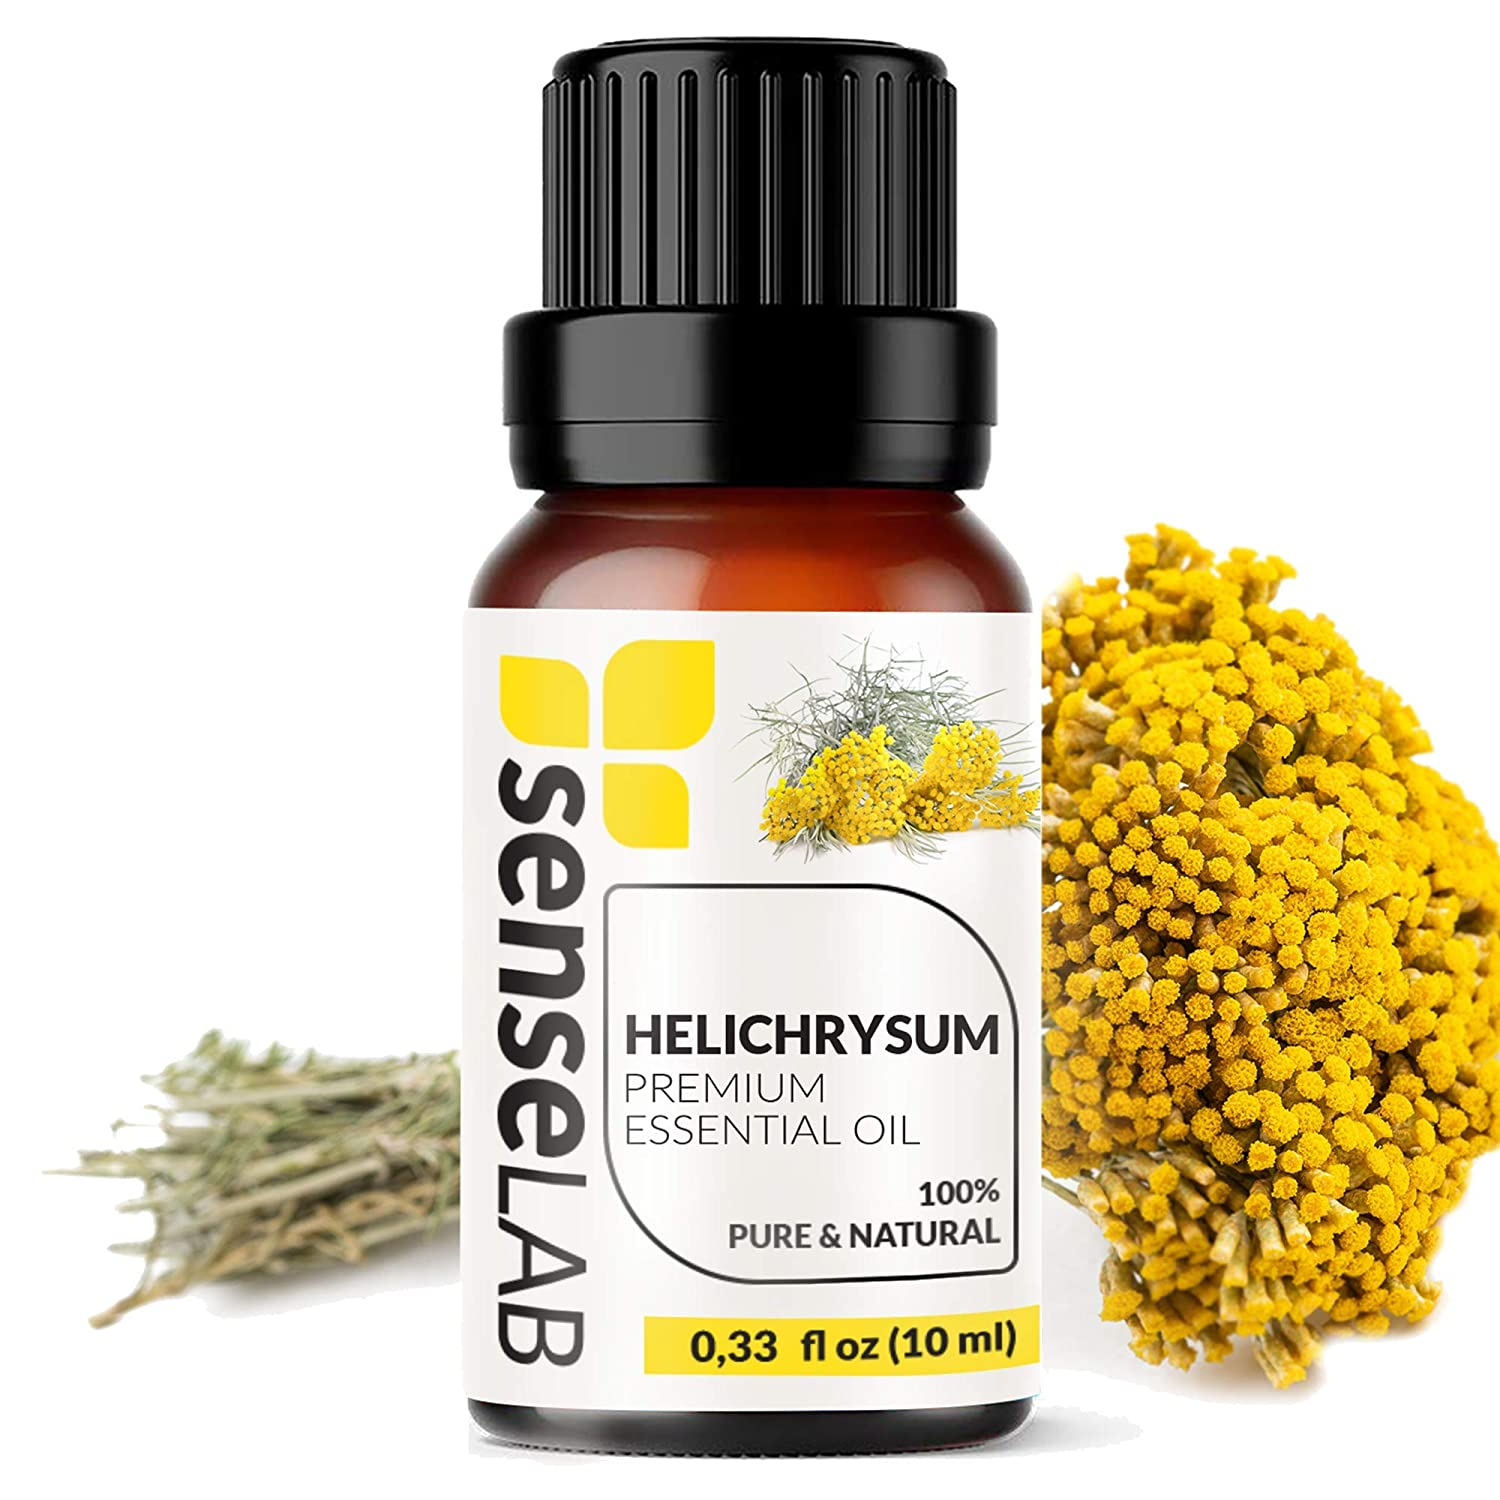 Helichrysum Essential Oil - 100% Pure Extract Helichrysum Oil Therapeutic Grade (0.33 Fl Oz / 10 ml)